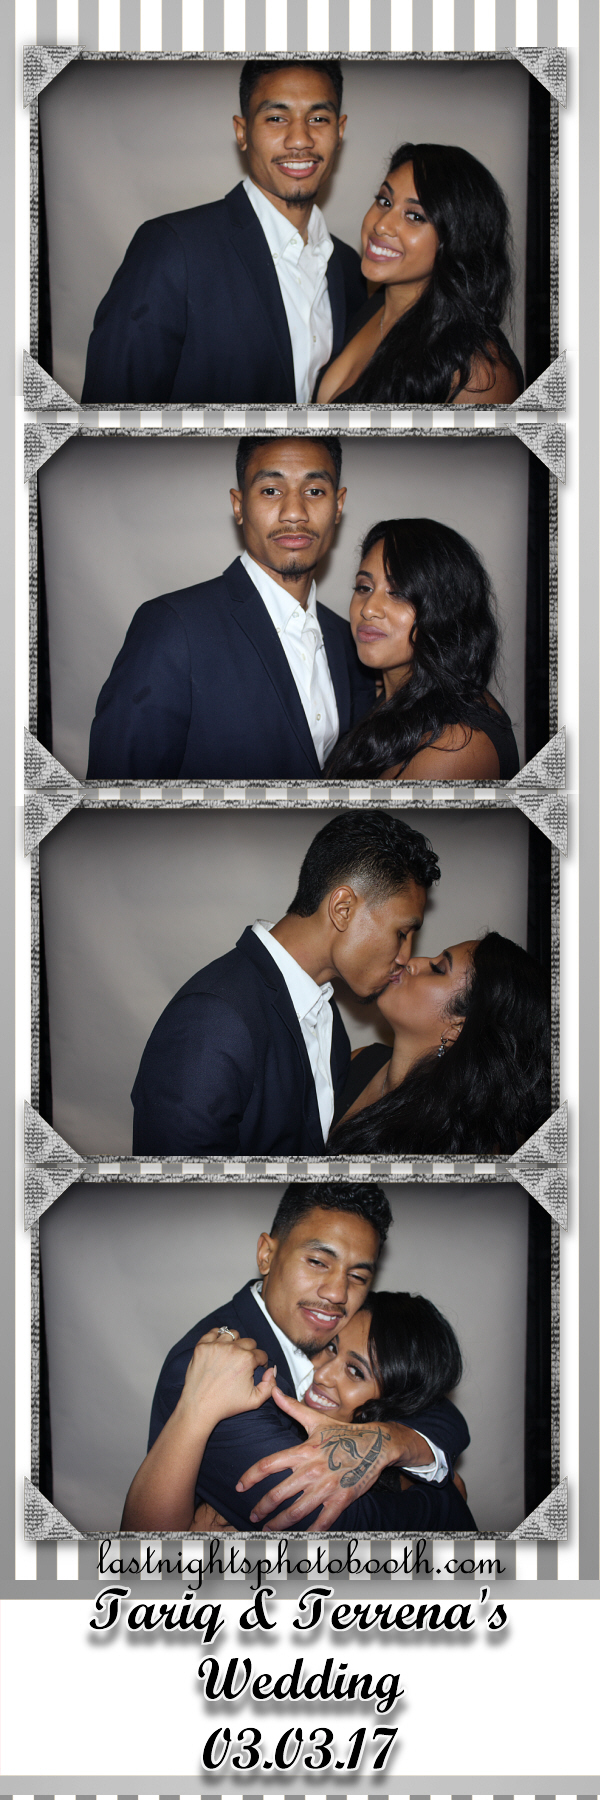 Photo Booth Rental for Tariq and Terrenas Wedding 2017_94